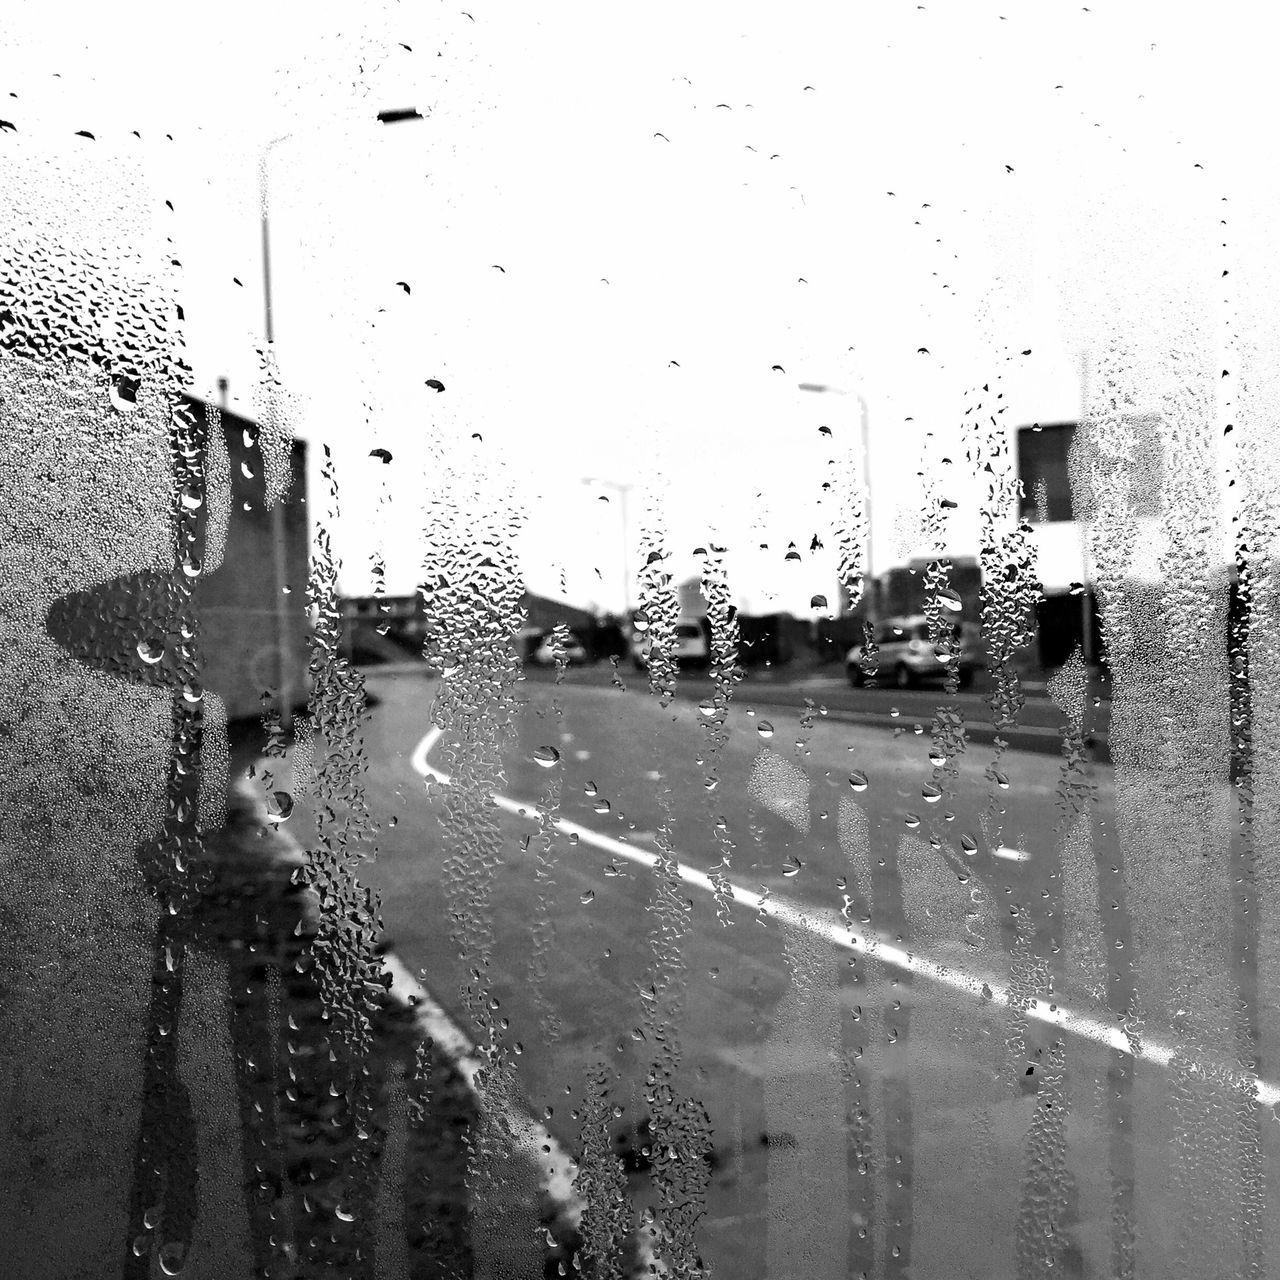 rain, transparent, wet, glass - material, window, drop, water, rainy season, transportation, land vehicle, raindrop, weather, mode of transport, car, no people, windshield, day, architecture, built structure, road, building exterior, outdoors, close-up, sky